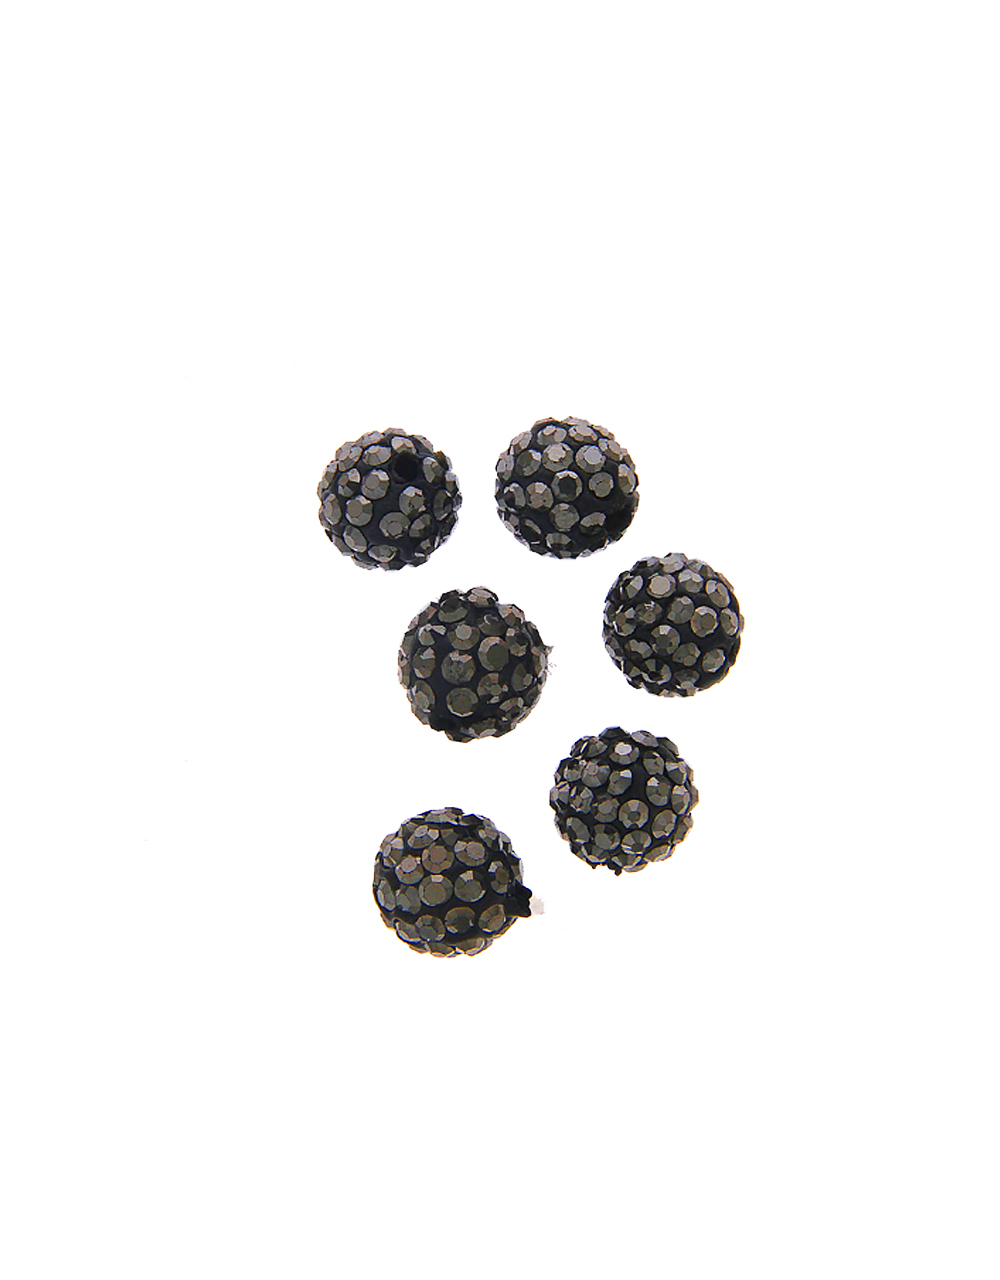 Grey Colour Fancy Beads Material For Jewellery